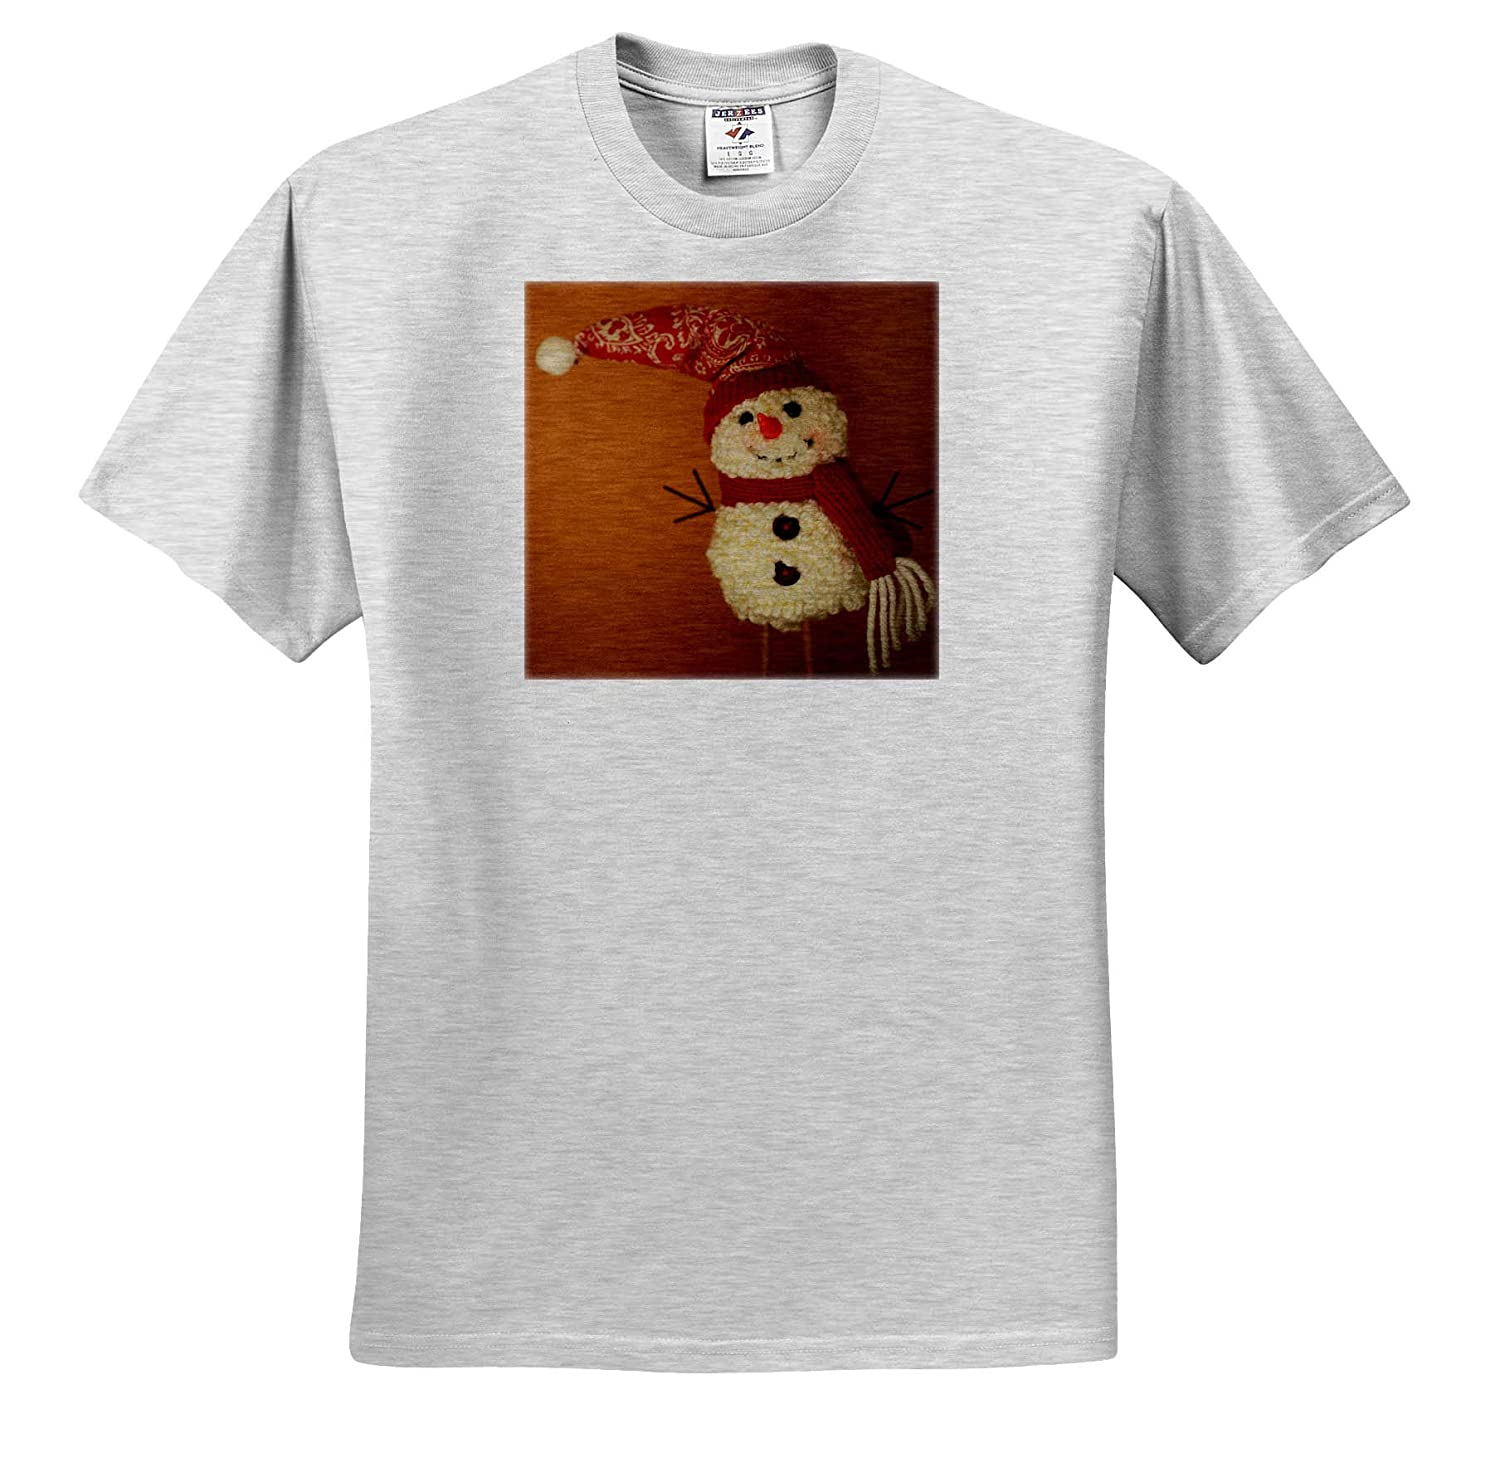 Holiday Photograph of a Snowman Decoration on Display for The Holidays 3dRose Stamp City - T-Shirts